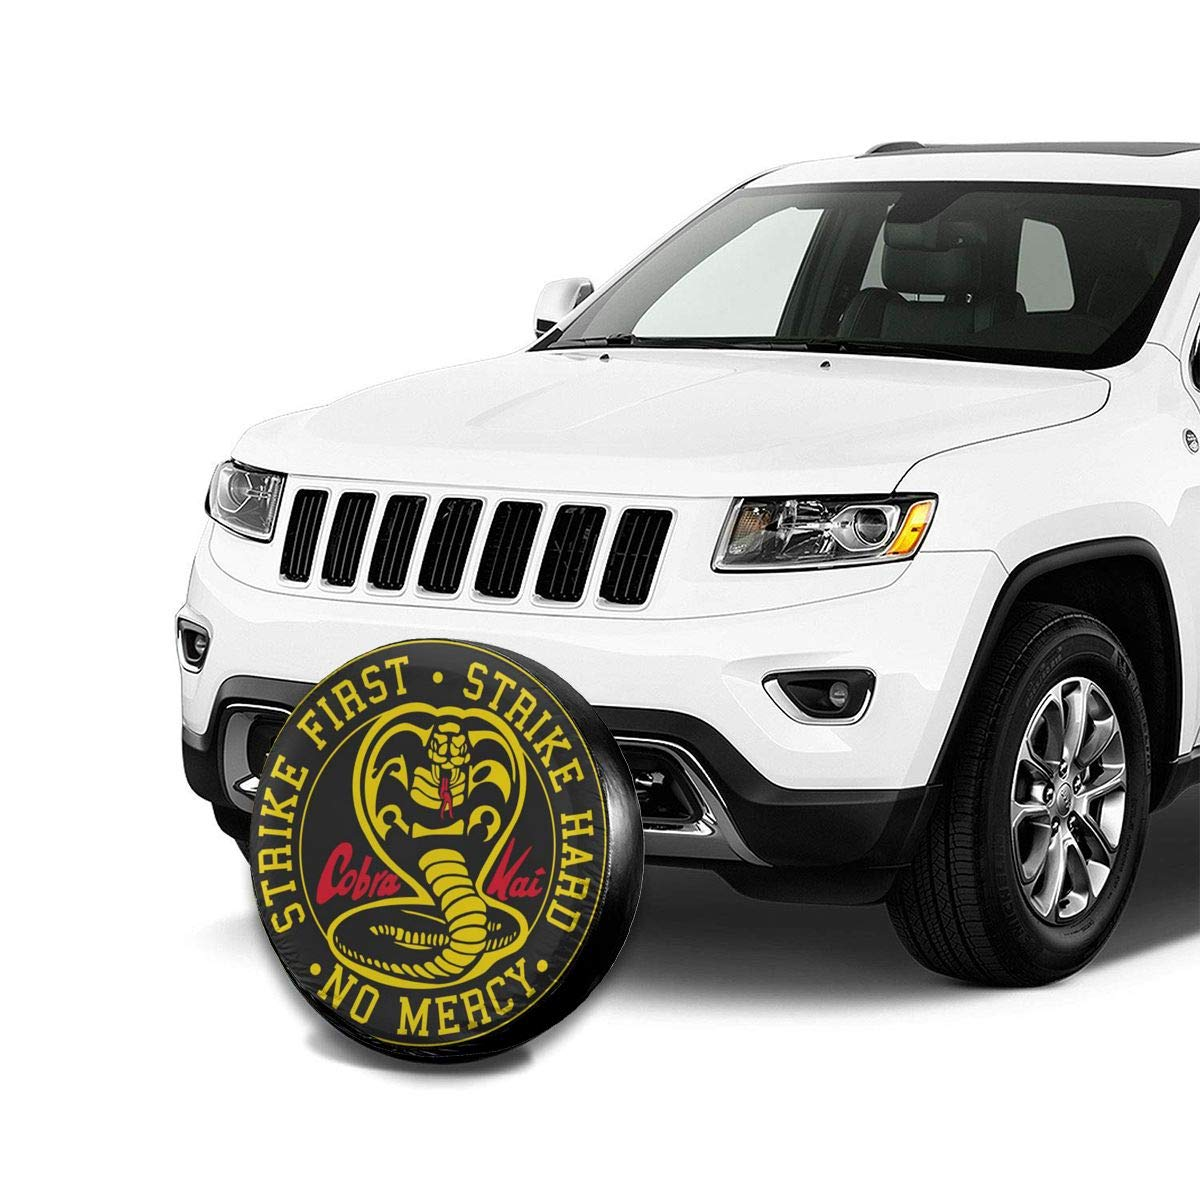 14,15,16,17 Inch Cobra Kai Spare Tire Cover Dust-Proof Universal Wheel Protector Fit for Jeep and Various Vehicles